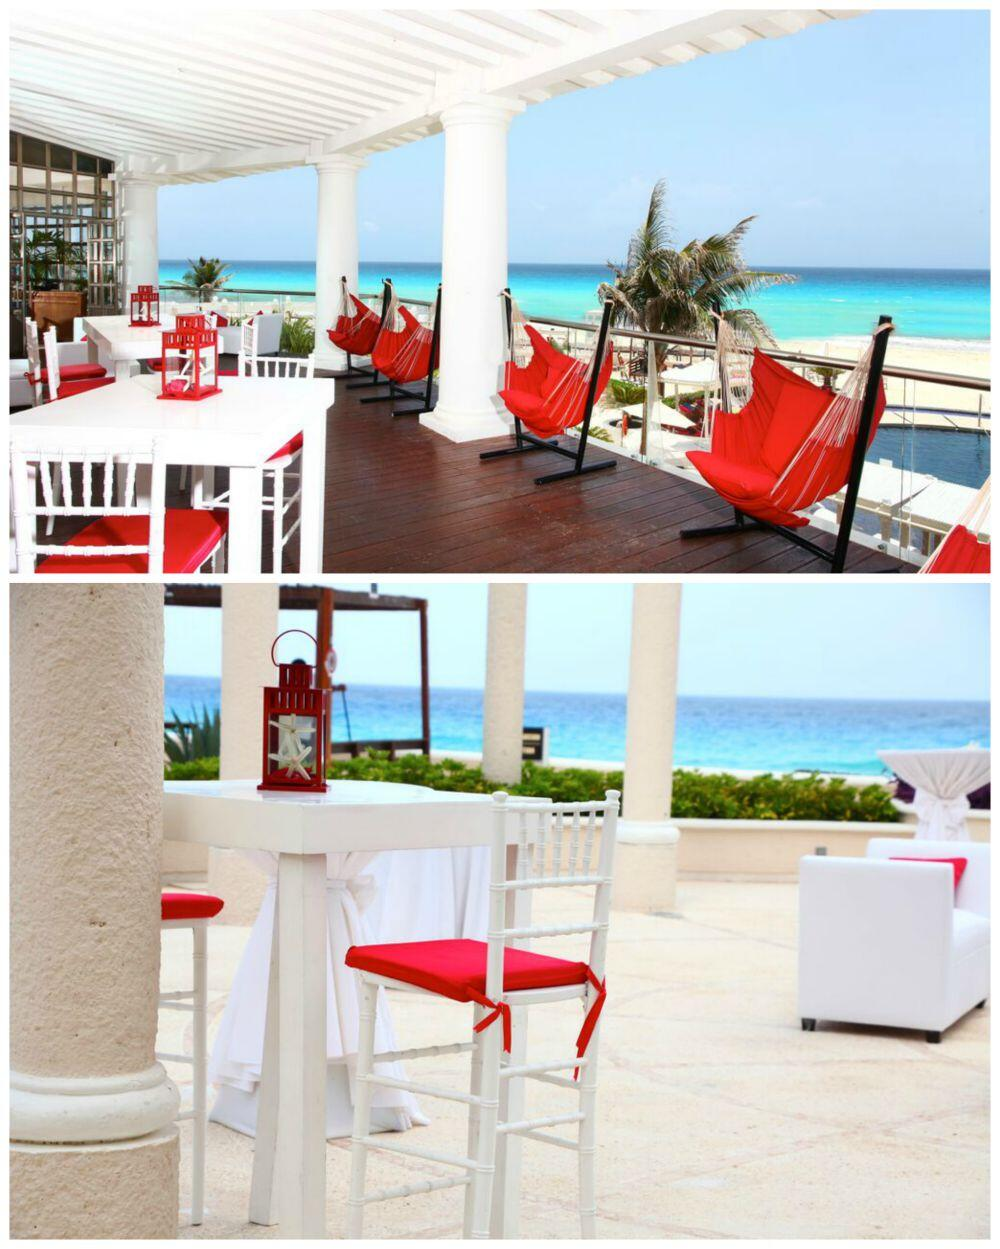 Eventos con vista al mar en Cancun